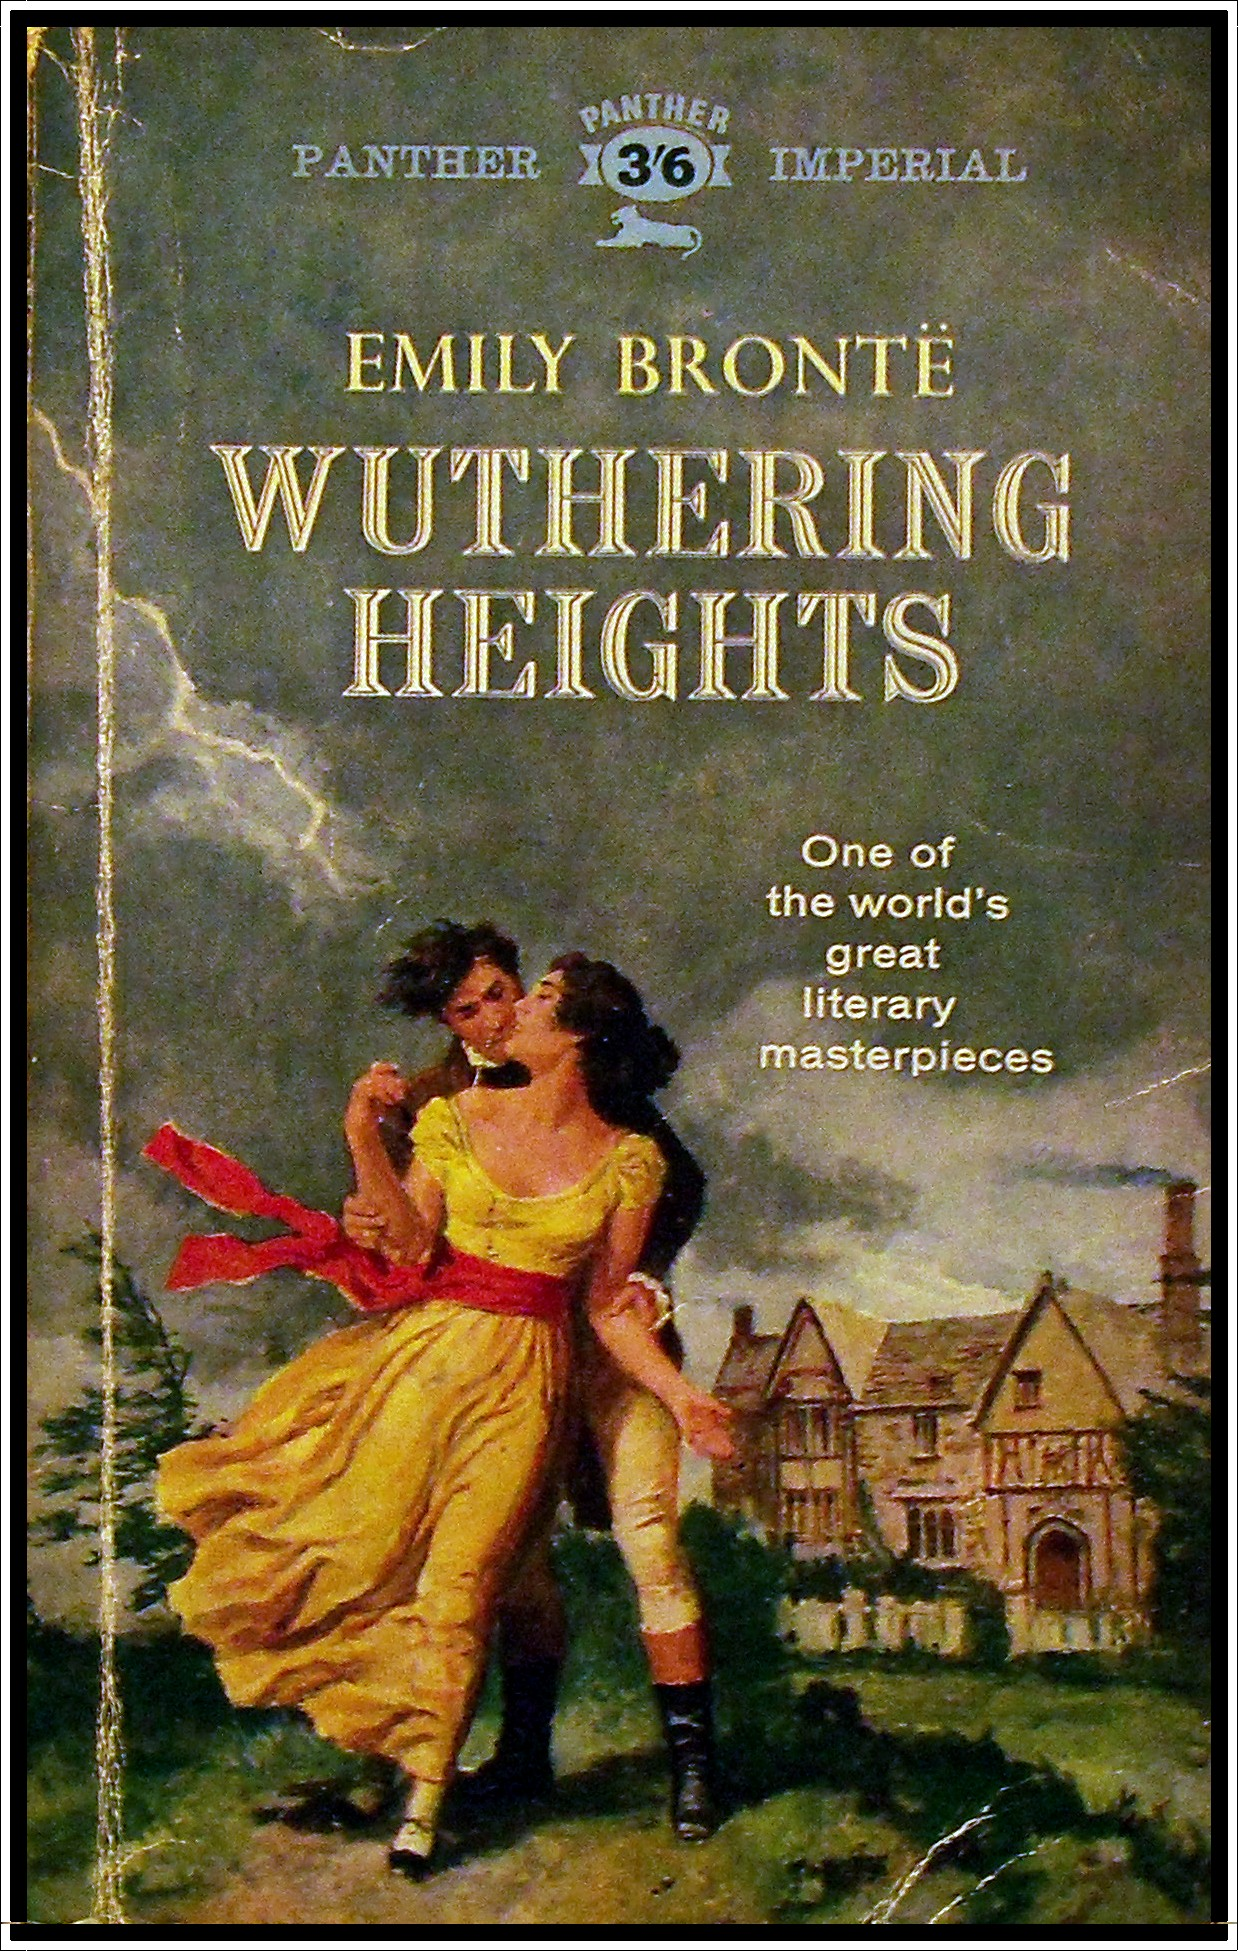 Wuthering Heights  is now widely regarded as a classic of English literature